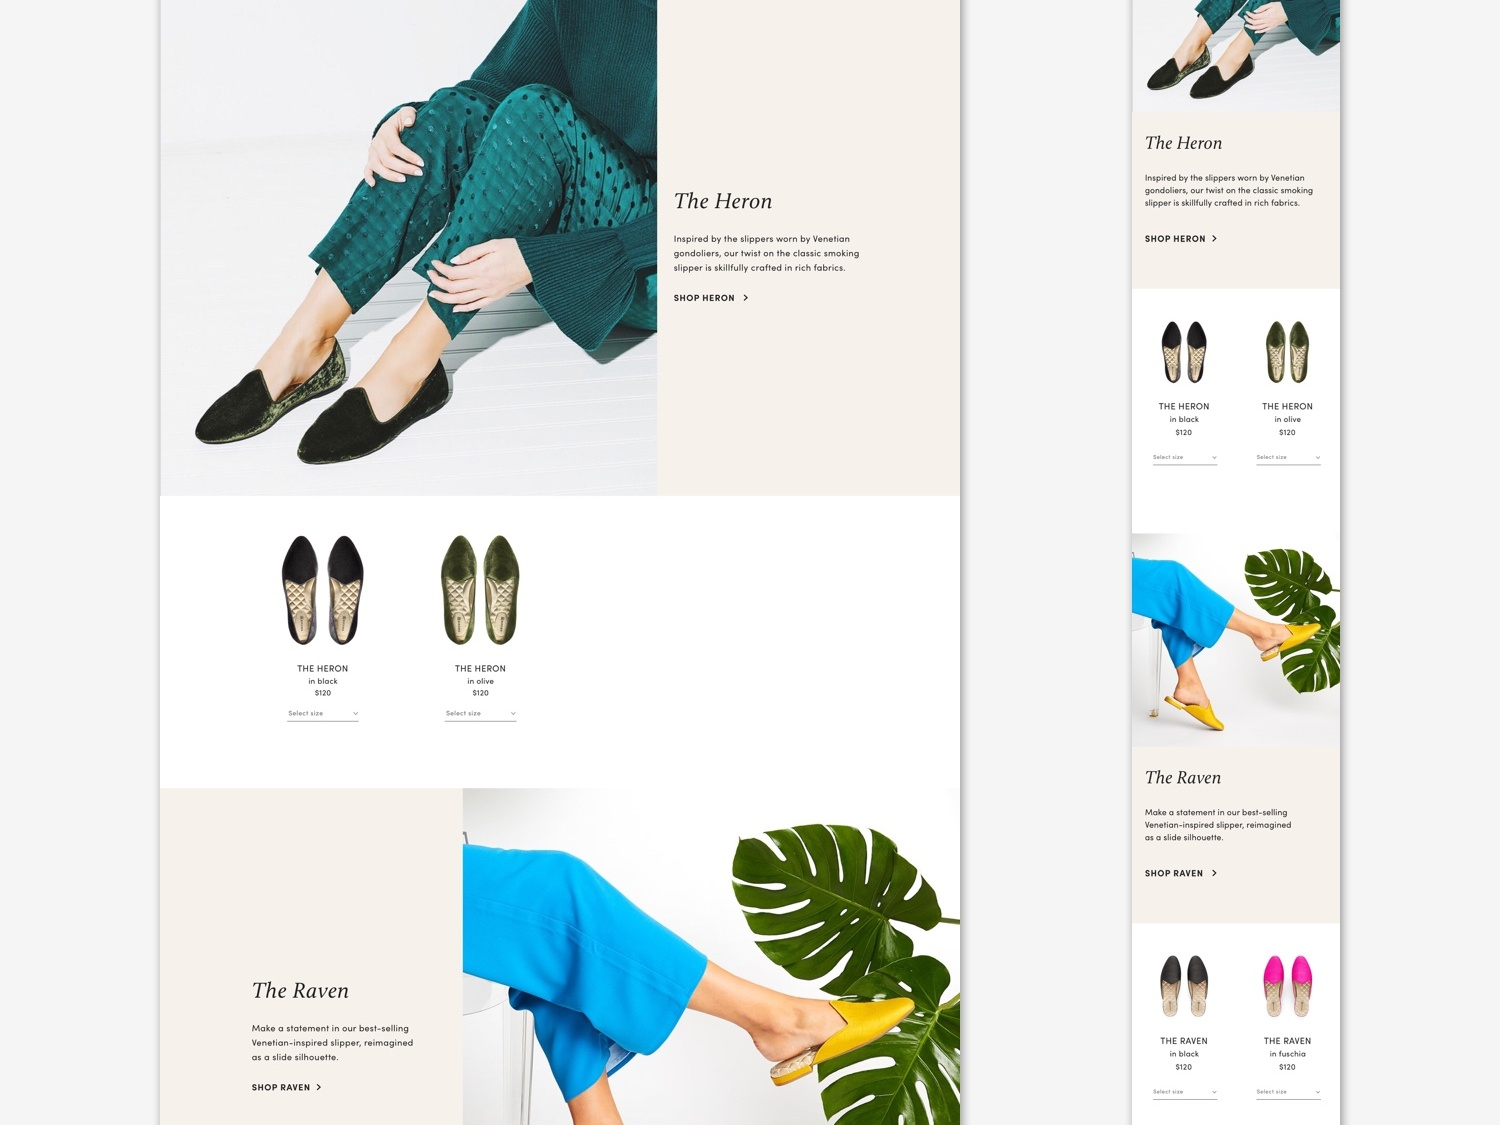 Collections snippet shoe brand fashion brand user experience user interface digital design ecommerce design layout ux ui web design ecommerce website design